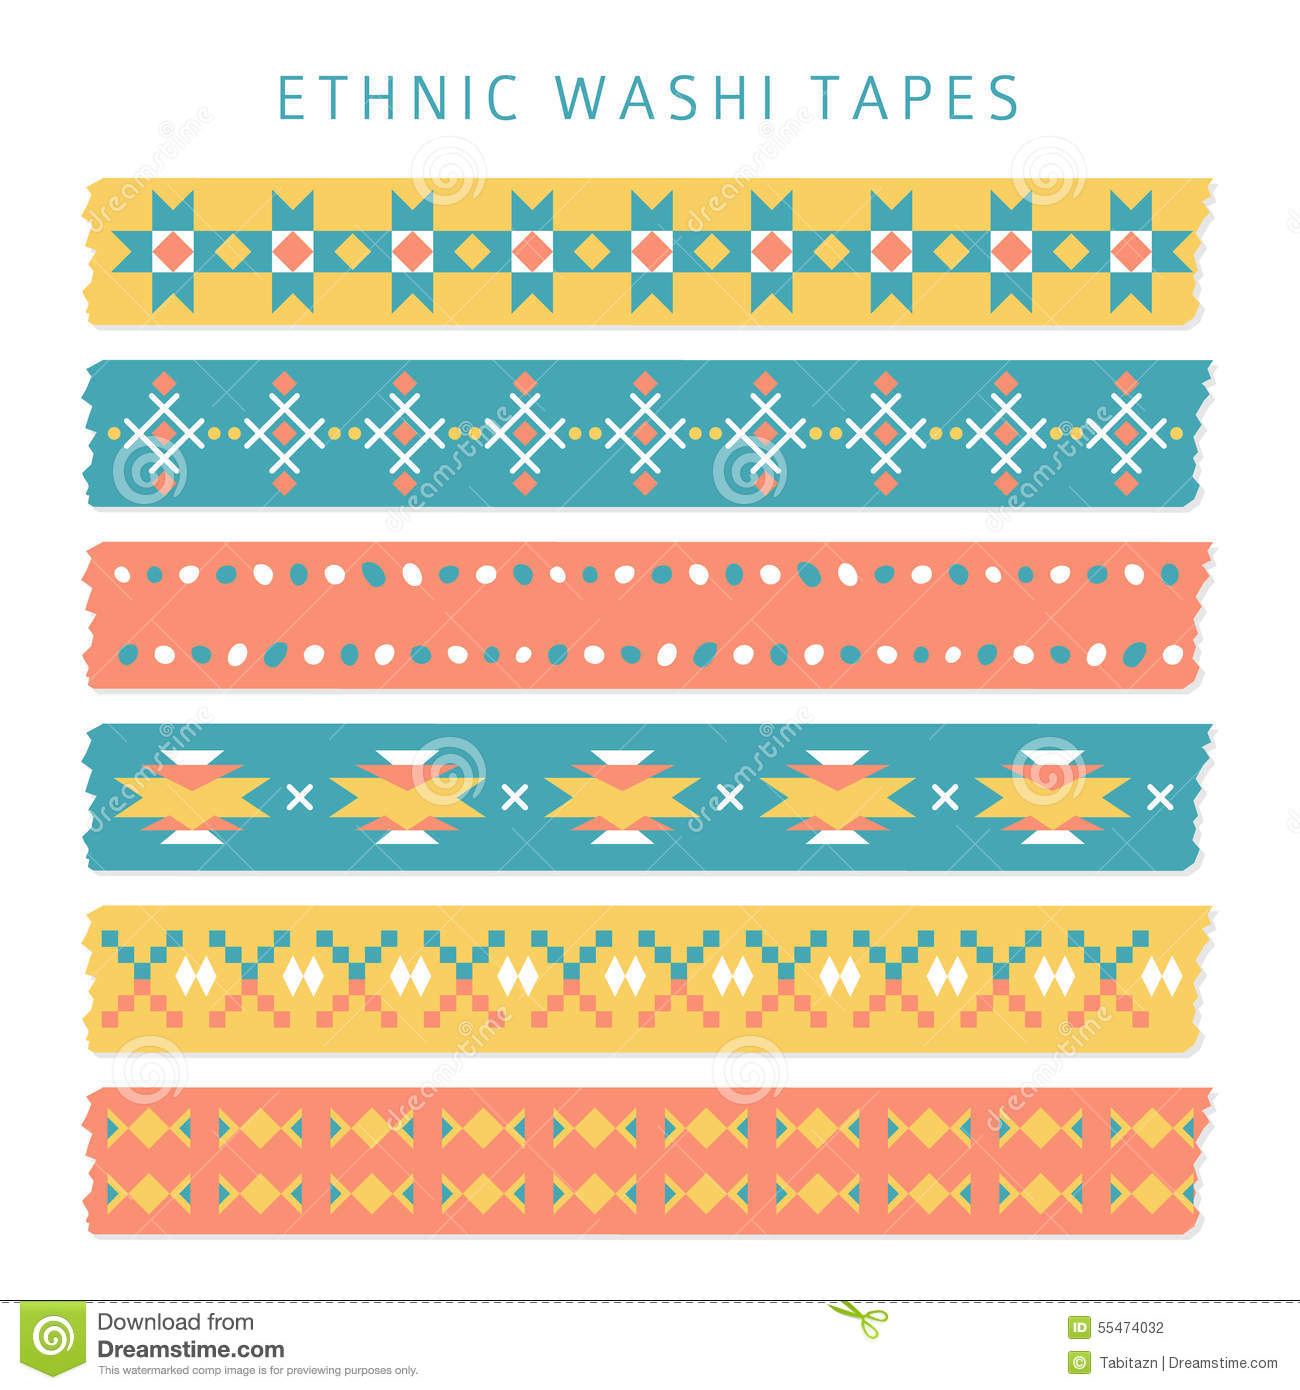 Set of washi tapes with trendy Aztec, Mexican or Navajo patterns, ethnic